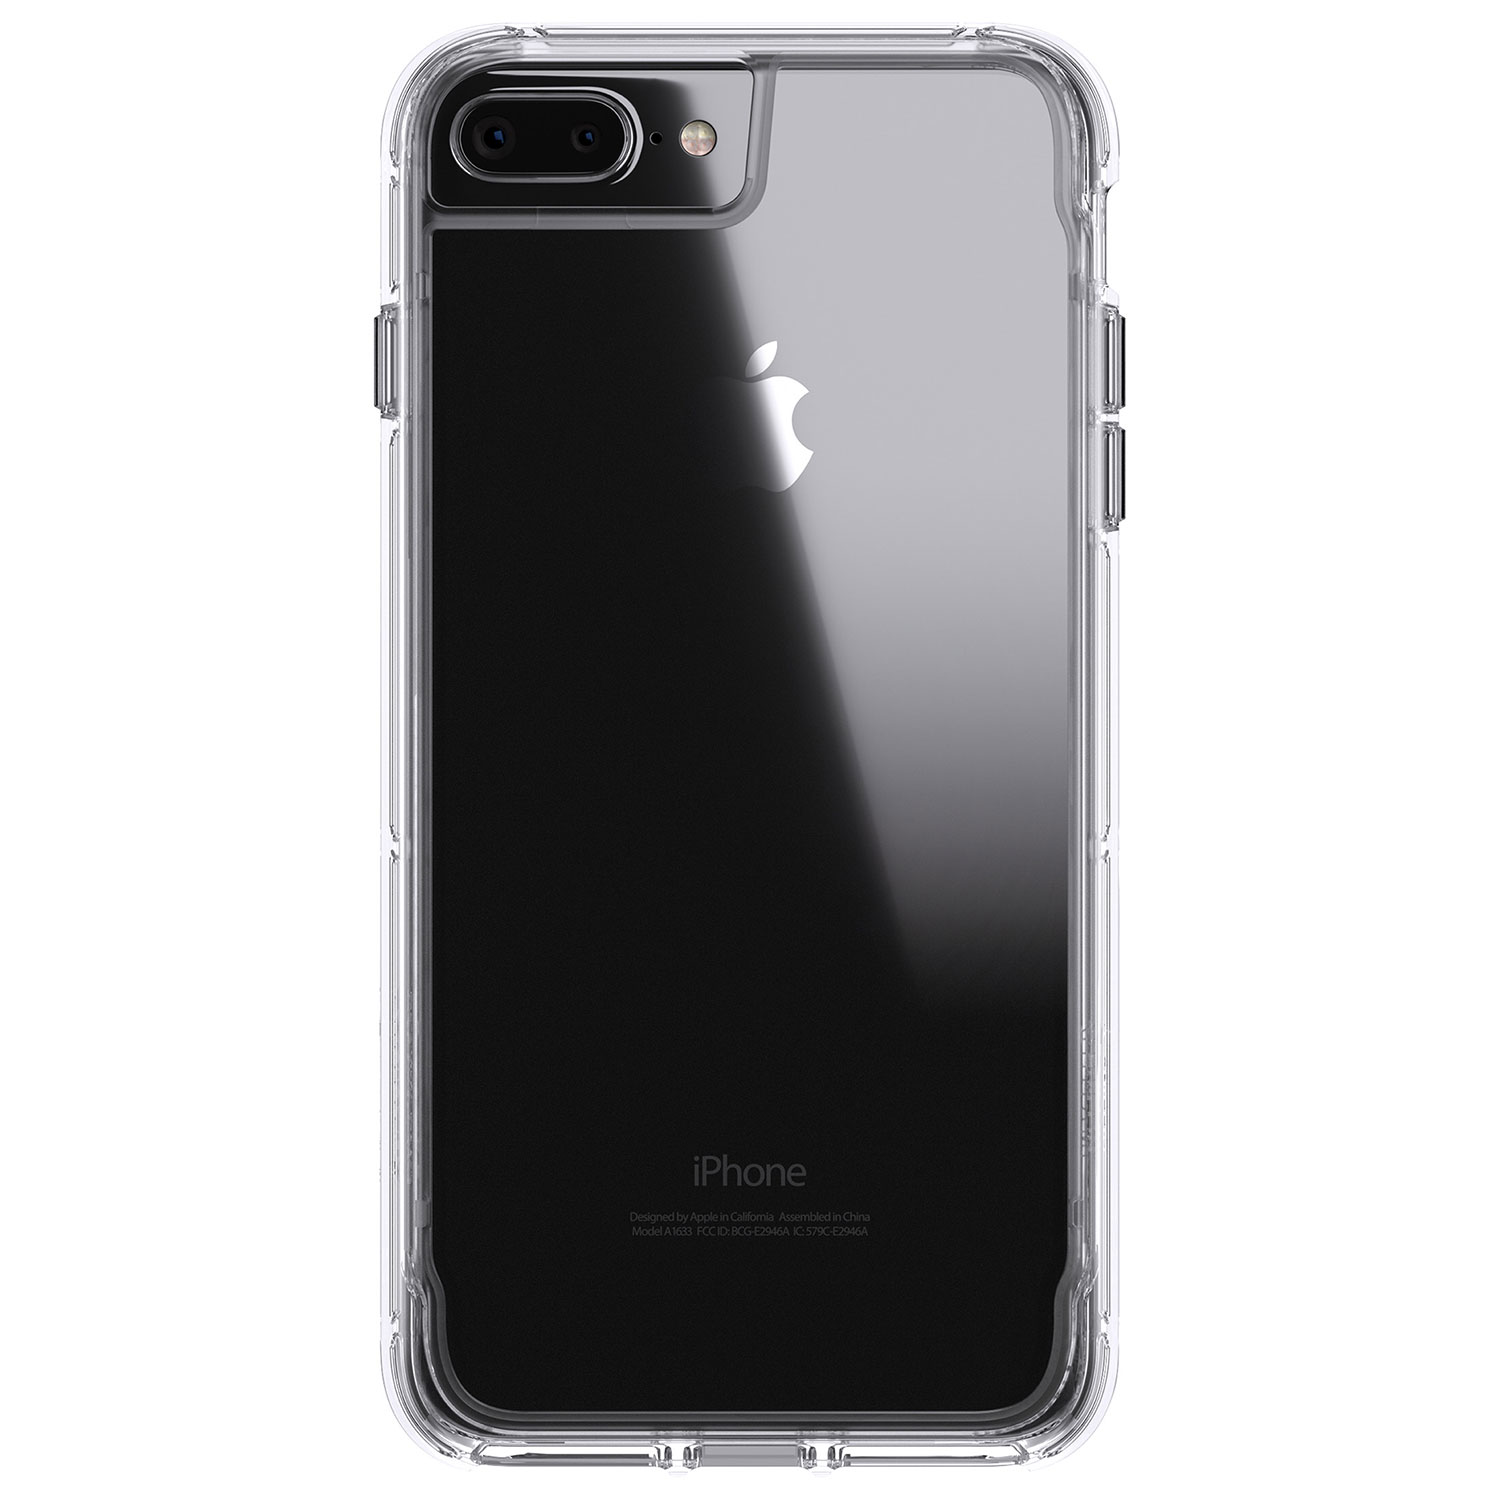 Griffin Survivor Clear Fitted Hard Shell Case for iPhone 8 Plus 7 Plus 6  Plus 6s Plus - Clear 73b9718e4afe